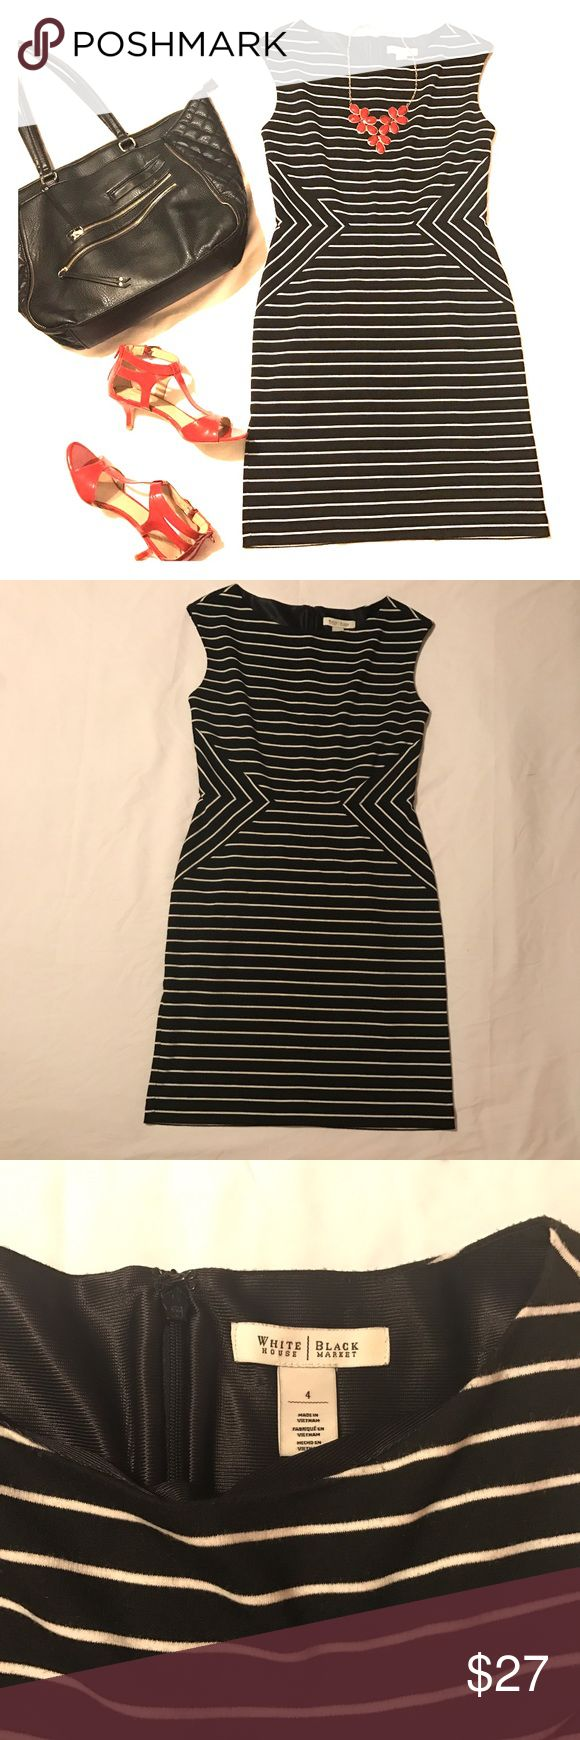 "White House Black Market striped sheath dress sz 4 White House Black Market Black & white striped sleeveless dress Women's size 4  Shell: 67% Polyester, 31% Rayon, 2% Spandex Lining: 100% Polyester  Knee length.  Boat neck. Zips up back.   Bust: 34"" Waist: 28"" Length: 36"" White House Black Market Dresses"